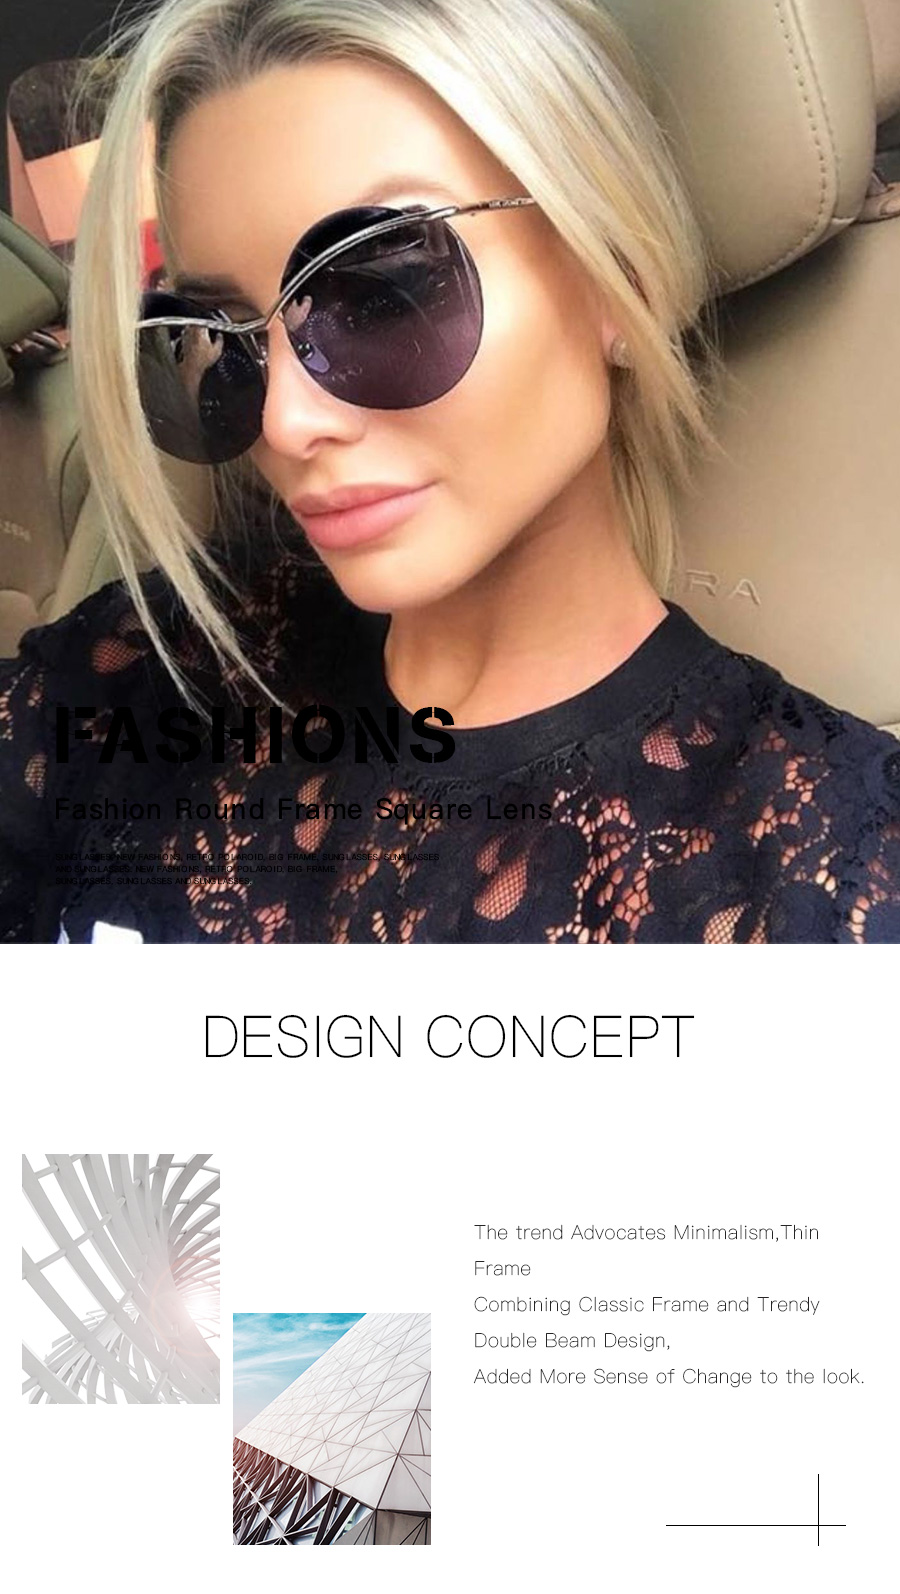 fd70d908443 prescription sunglasses online are necessary for us in sunning days  especially hot summer. The reason why black sunglasses are so popular is  that they are ...